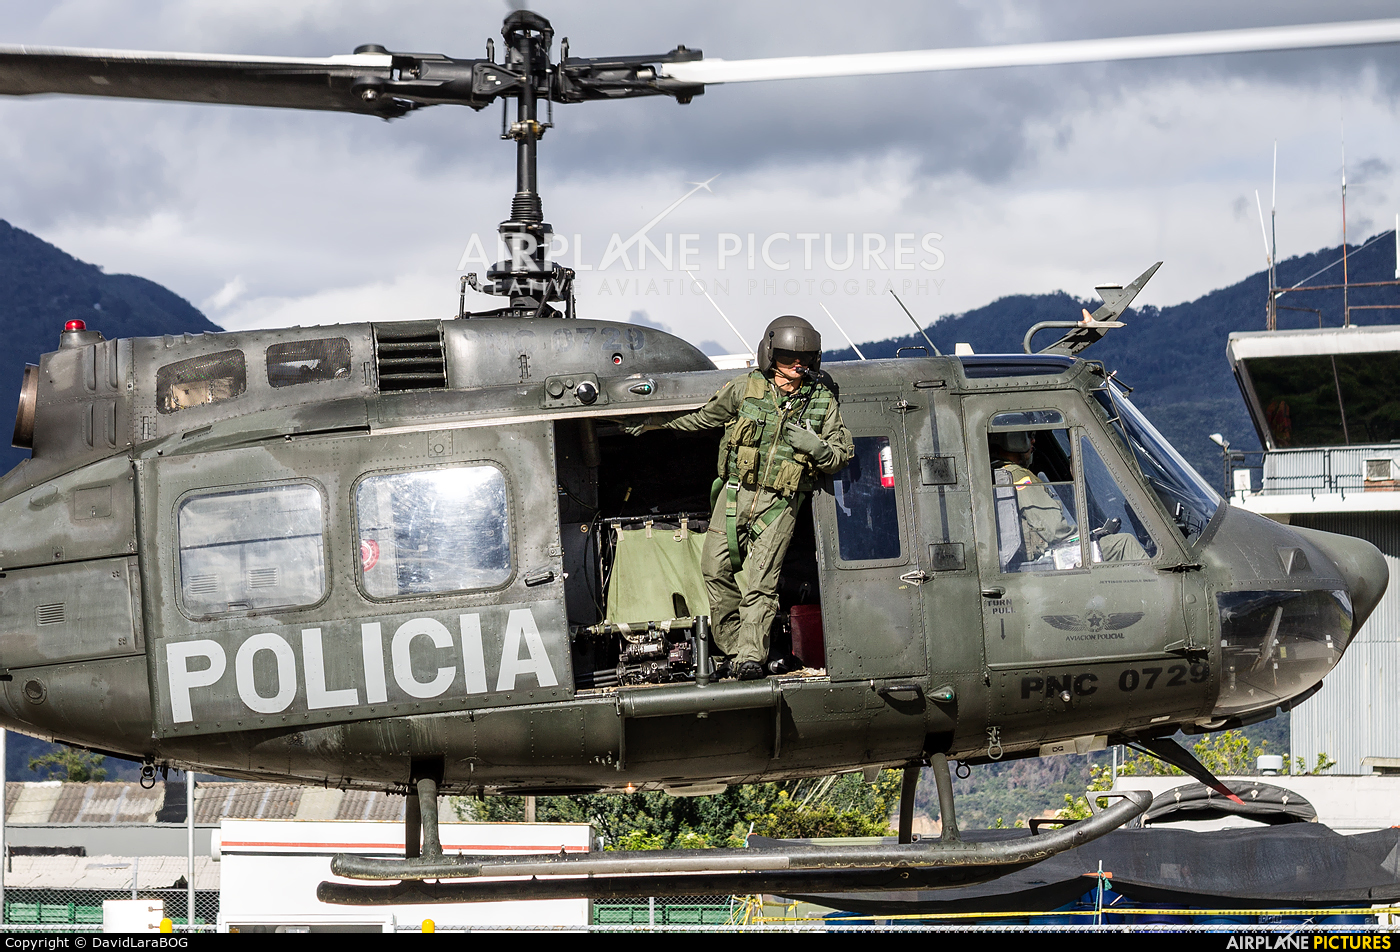 Colombia - Police PNC-0729 aircraft at Chía